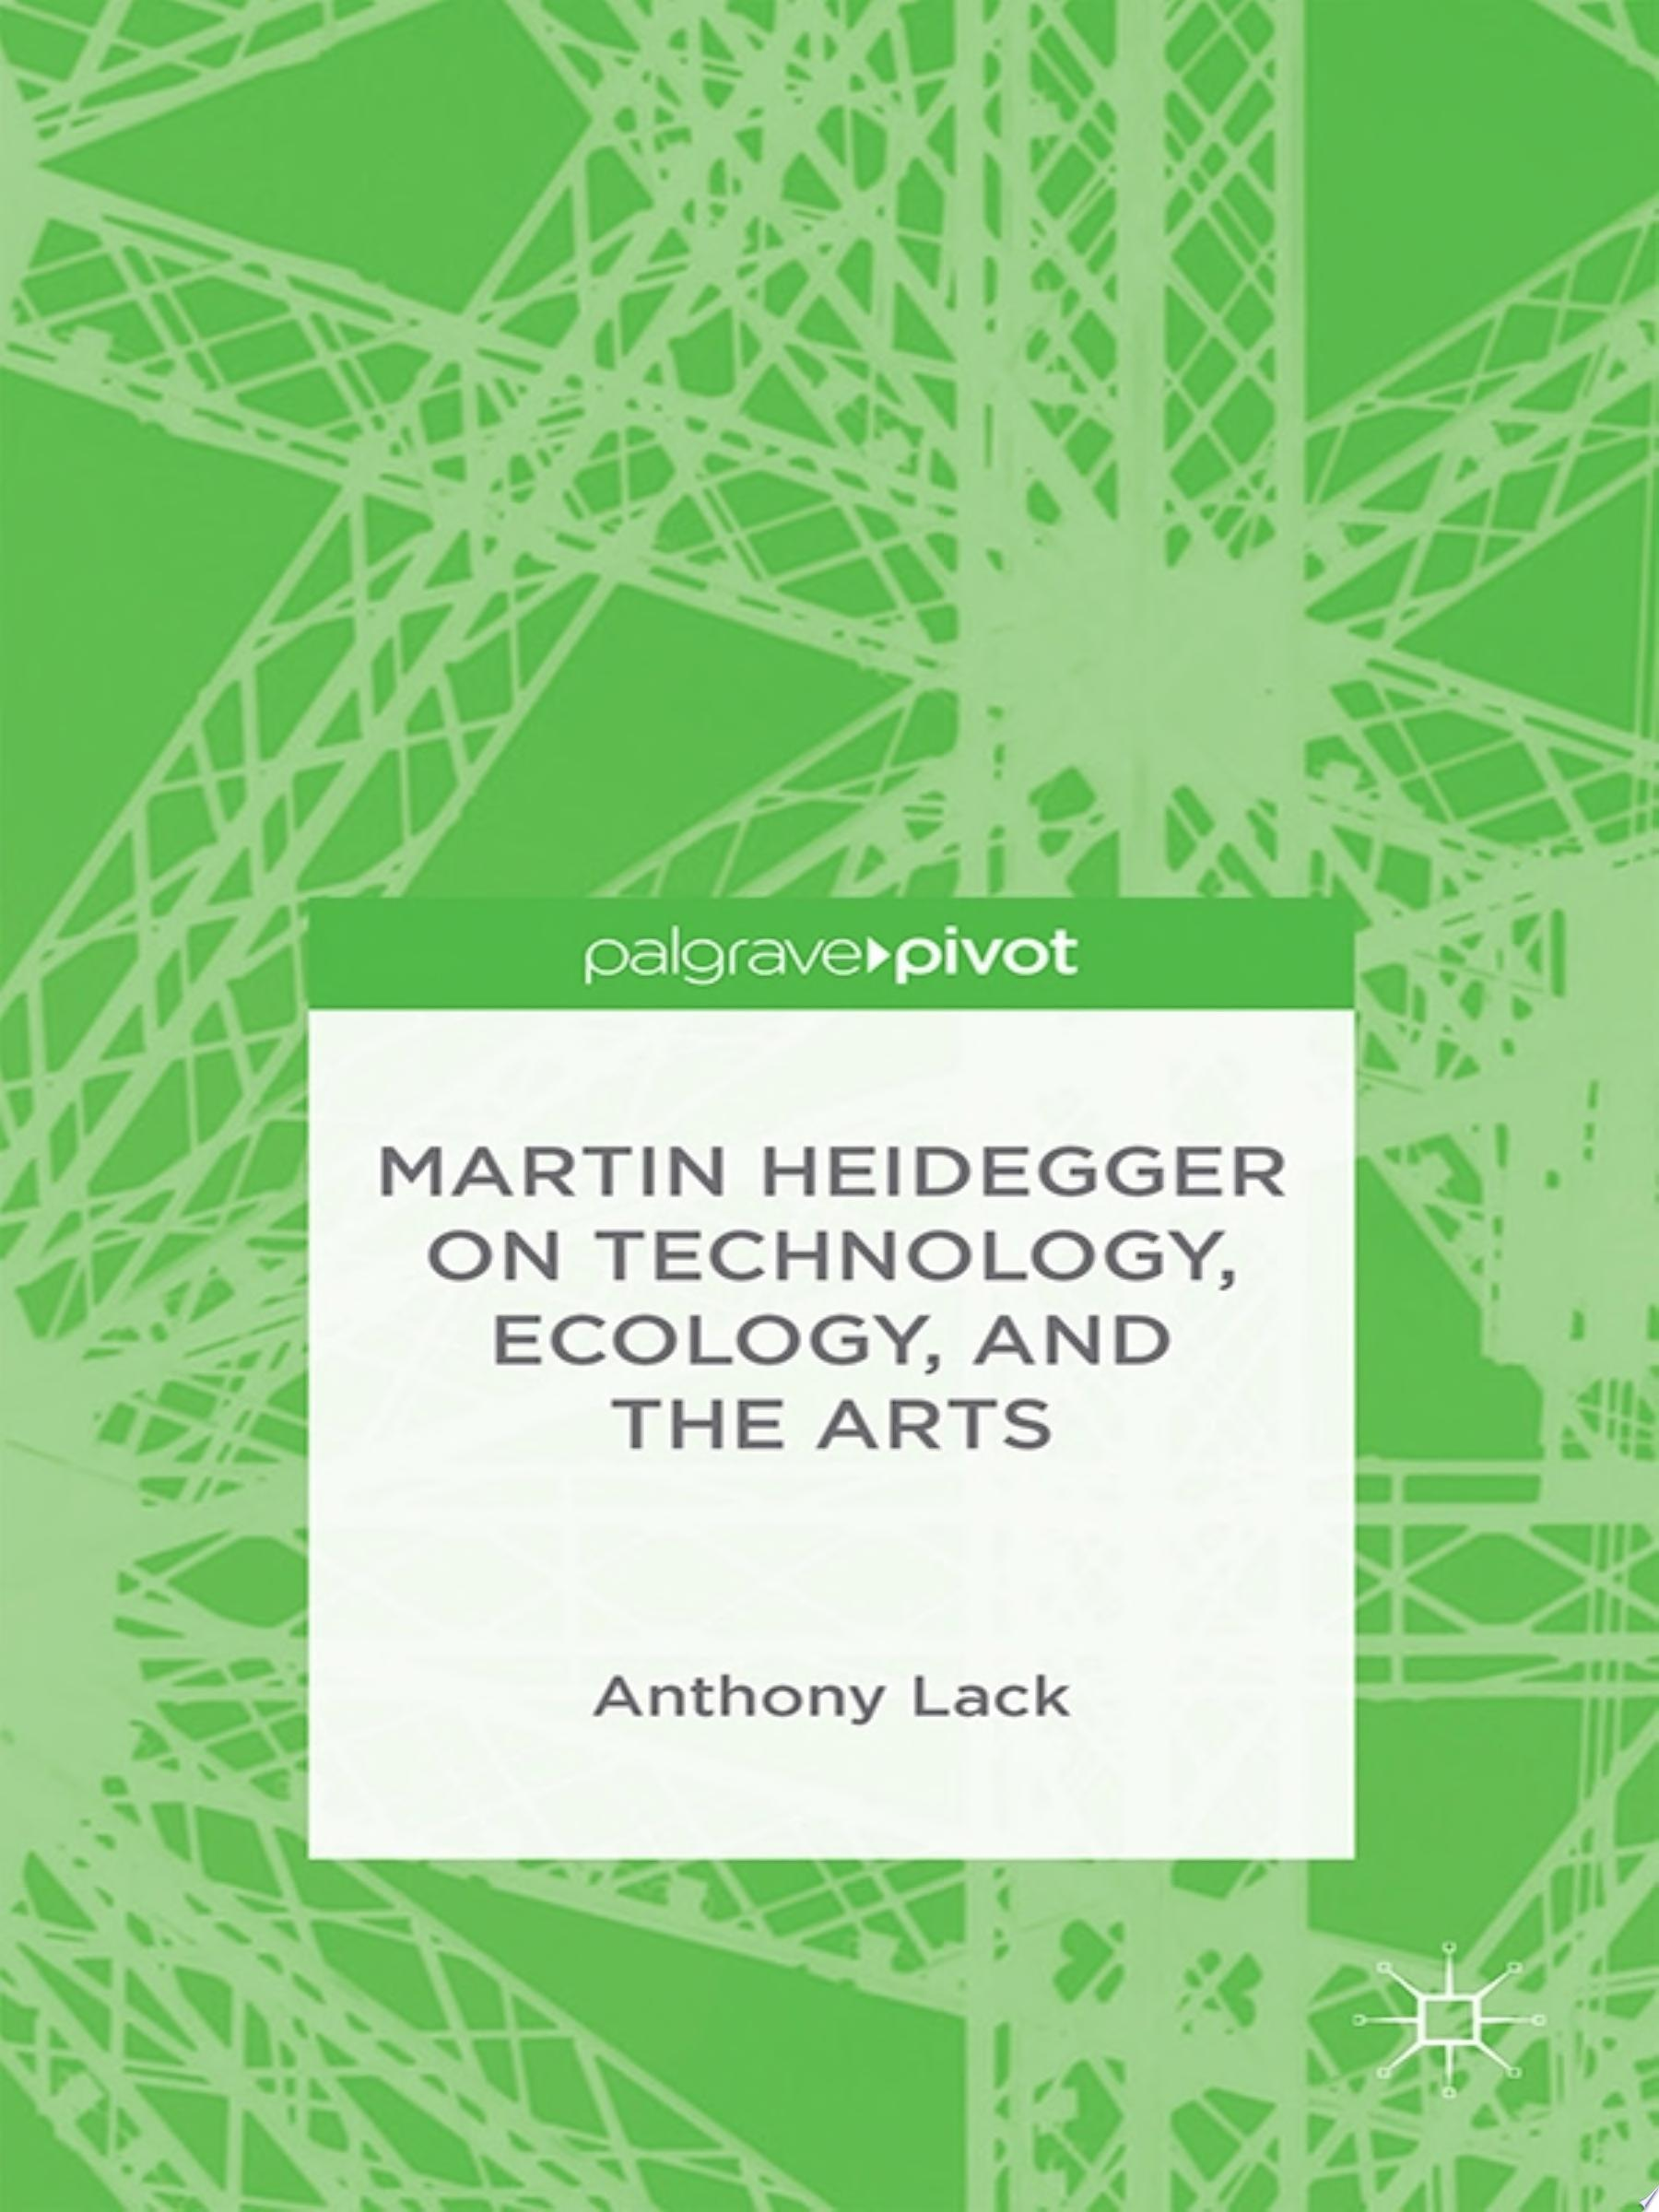 Martin Heidegger on Technology  Ecology  and the Arts